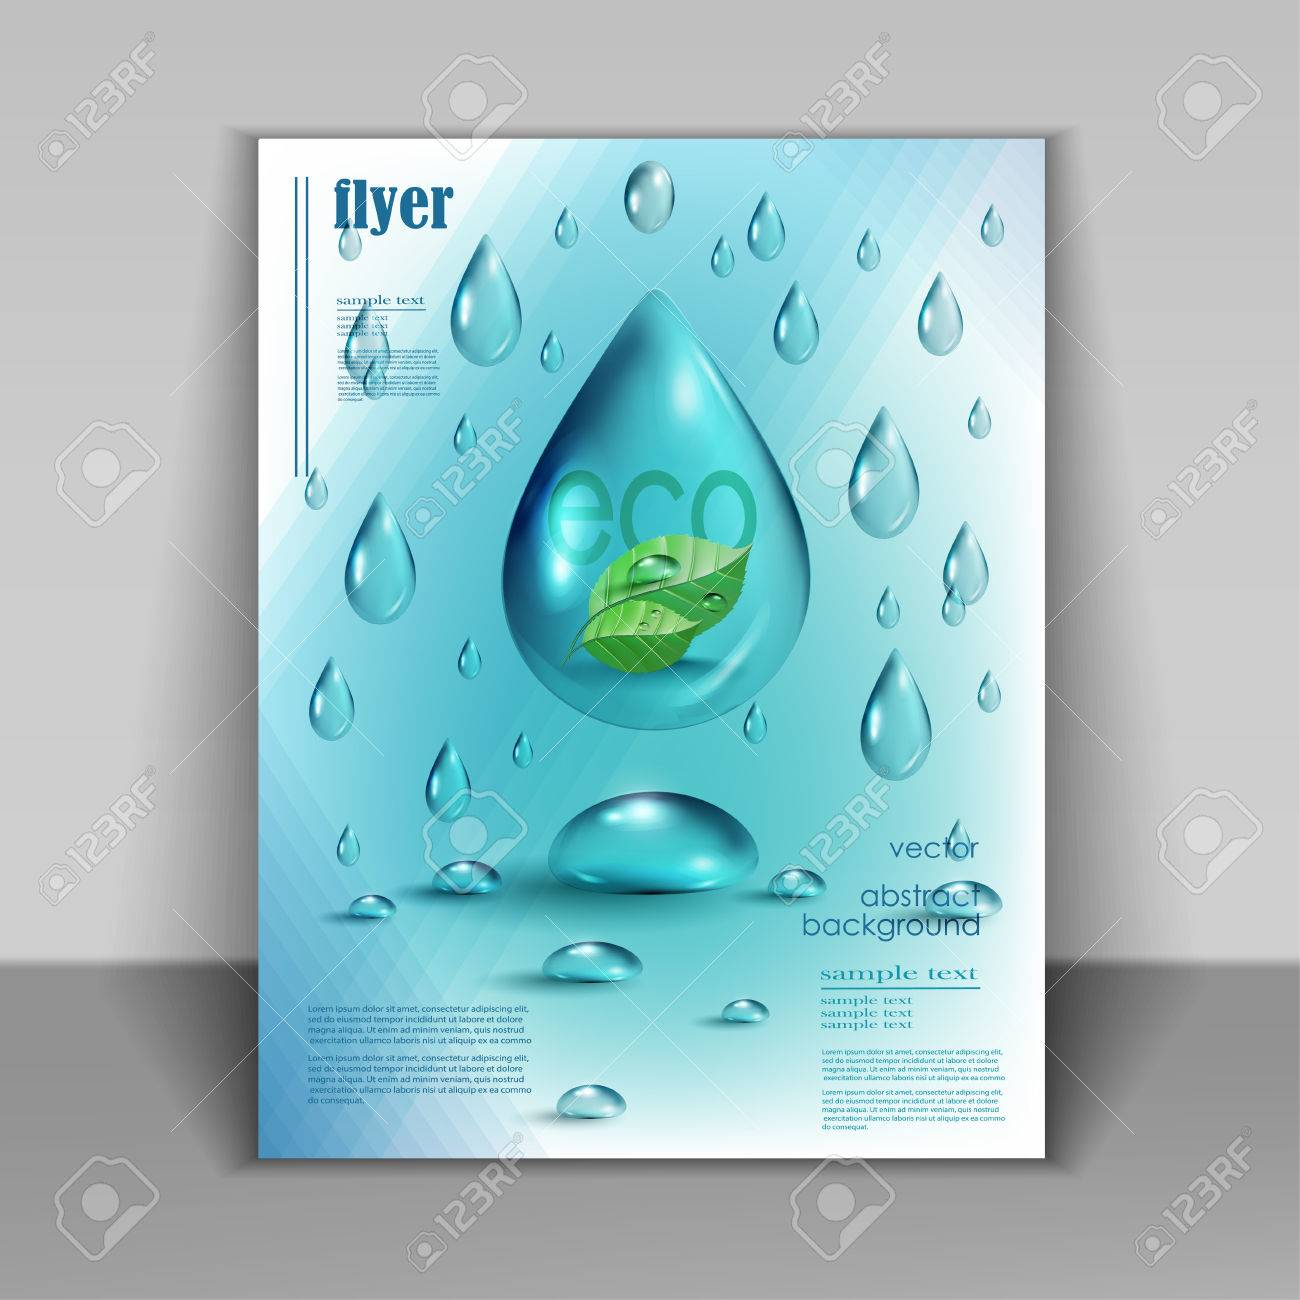 Water drops vector ecology background, leaflet template for your business presentation - 41815951